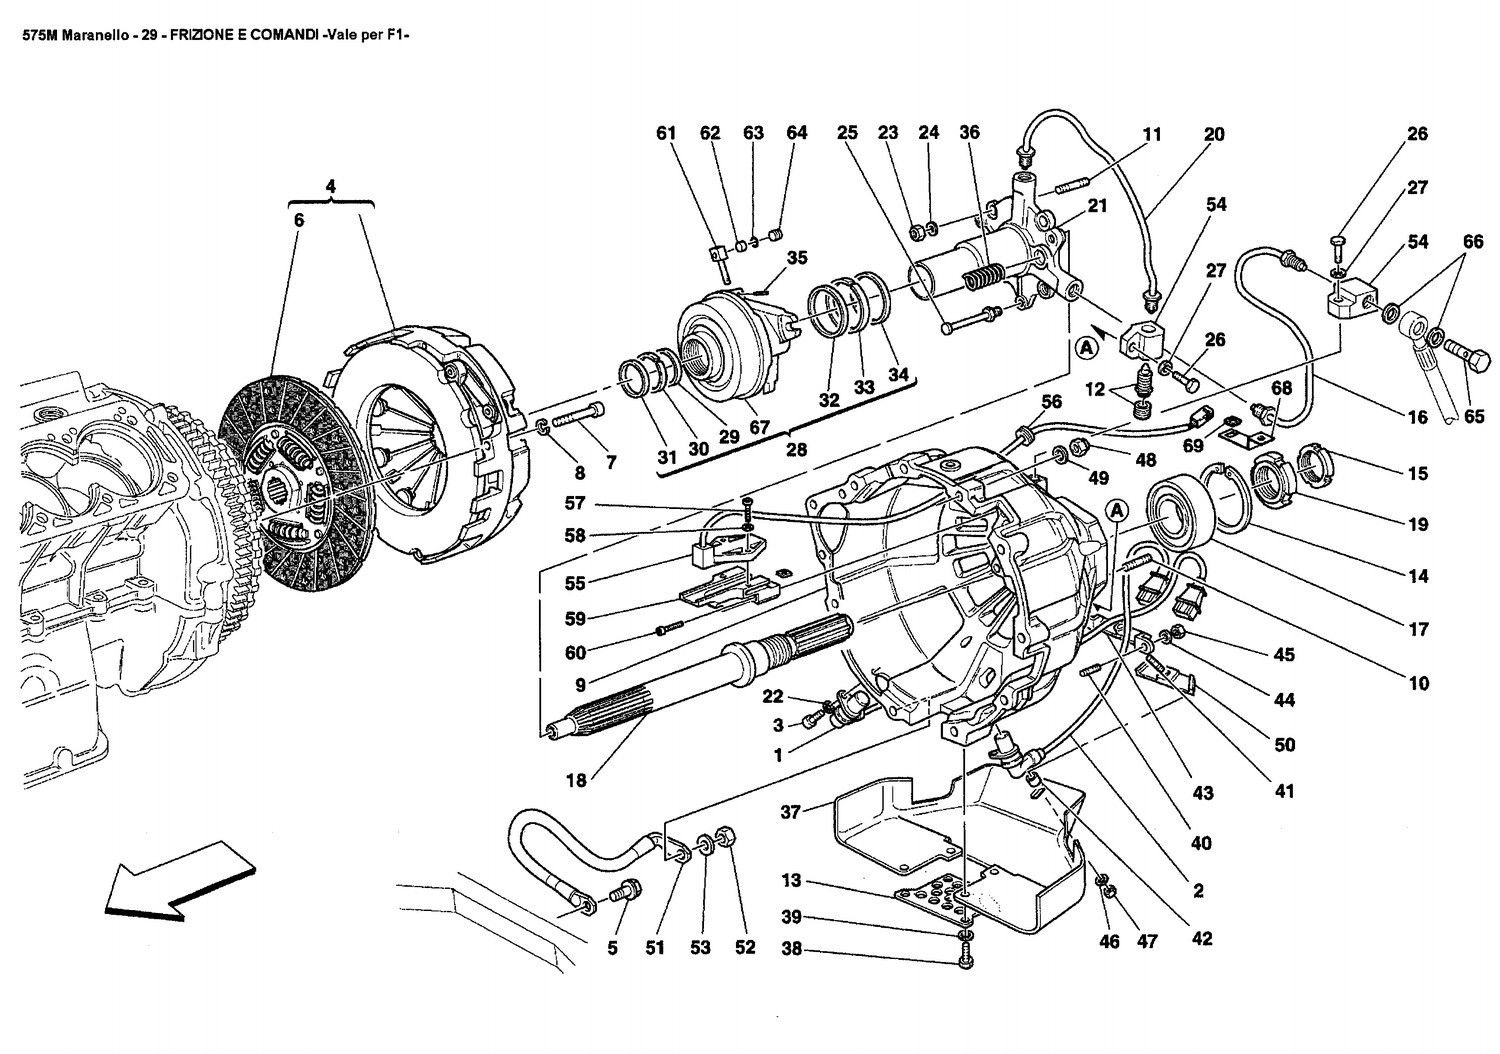 CLUTCH AND CONTROLS -Valid for F1-